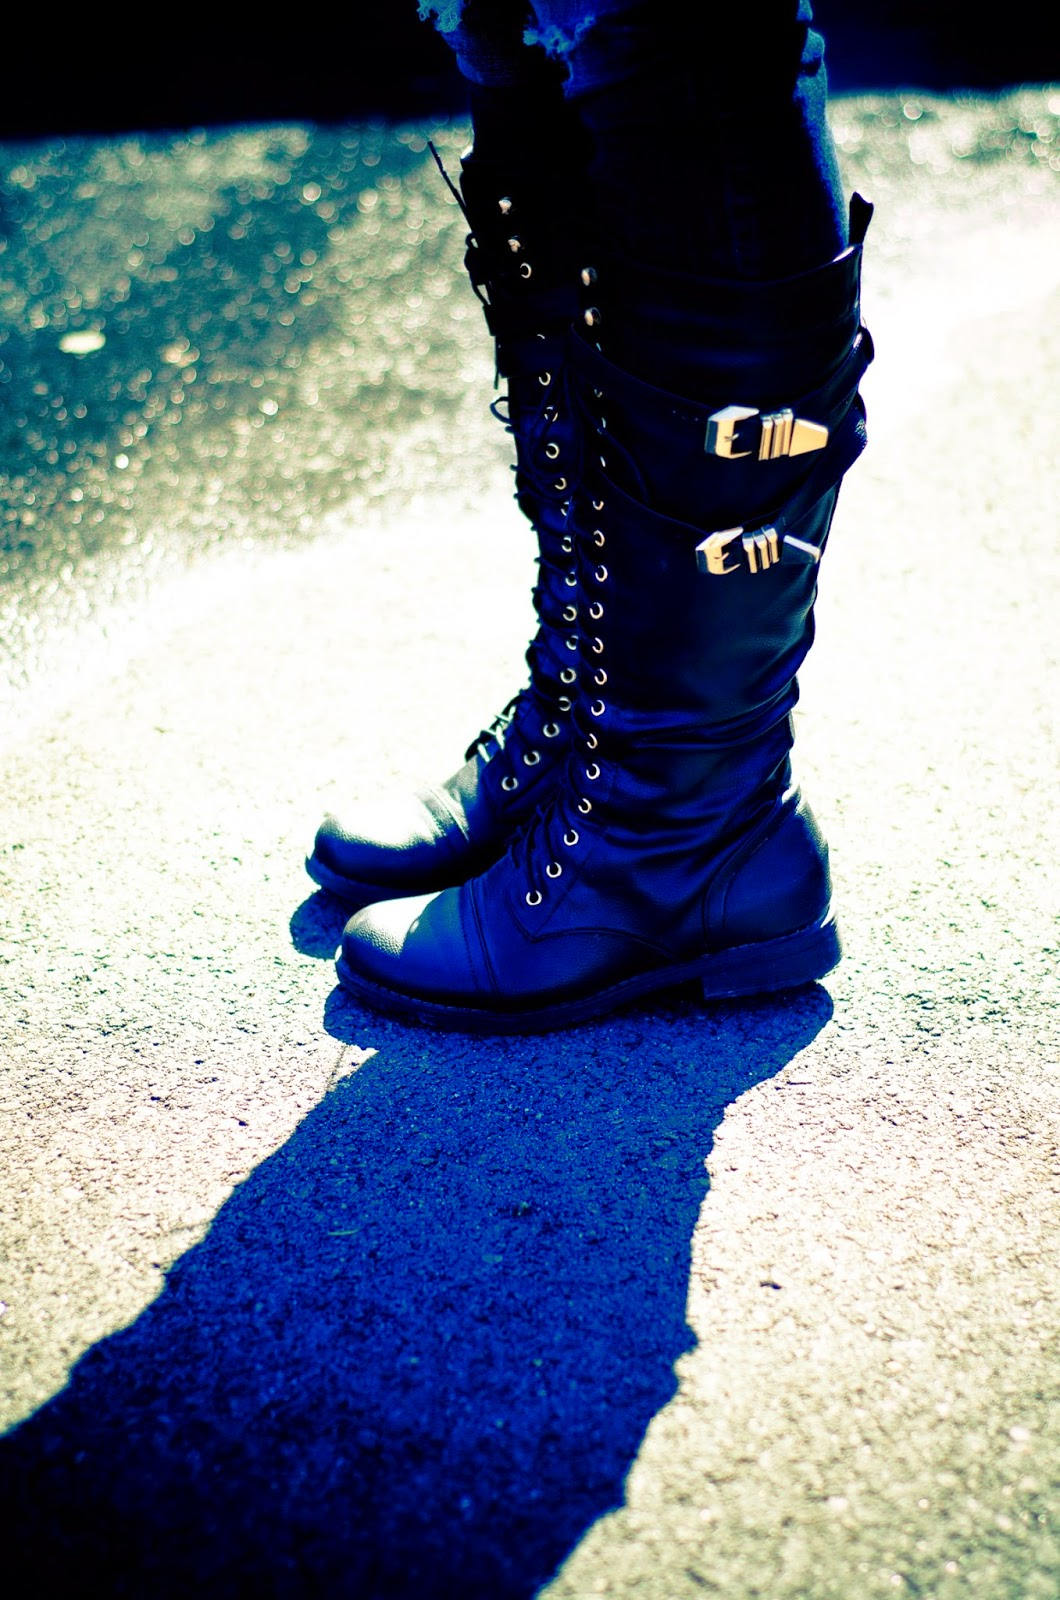 combat boots with destroyed denim